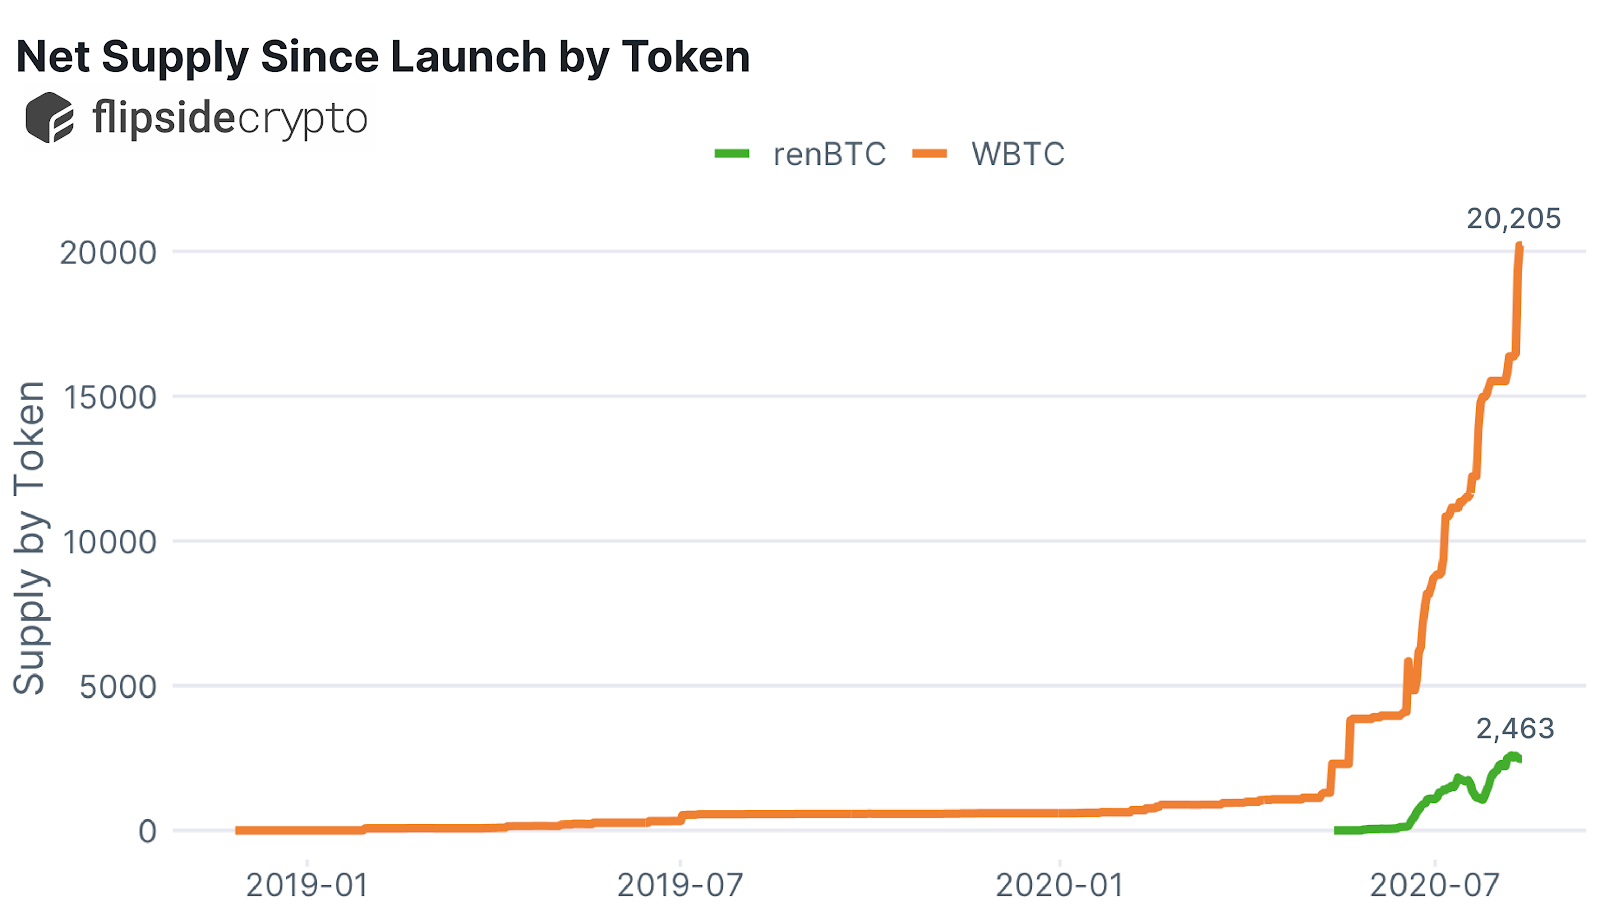 wBTC and renBTC net supply since launch. Source: Flipside Crypto